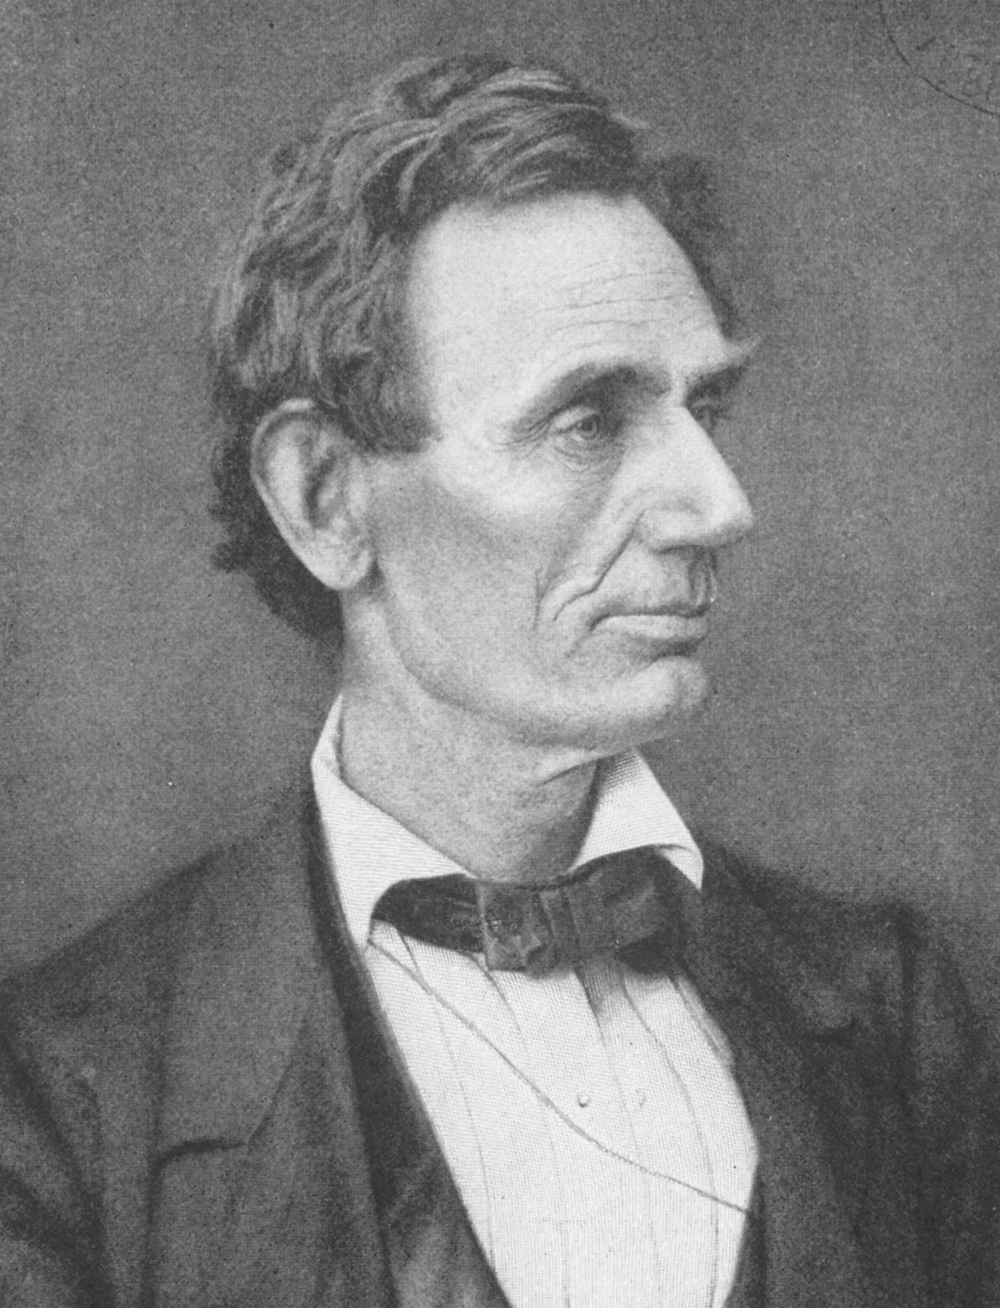 abraham lincoln autocratic and democratic president Alternate presidents is an alternate history anthology edited by mike resnick,  abraham lincoln is defeated by stephen a douglas in 1860,  as president, he.